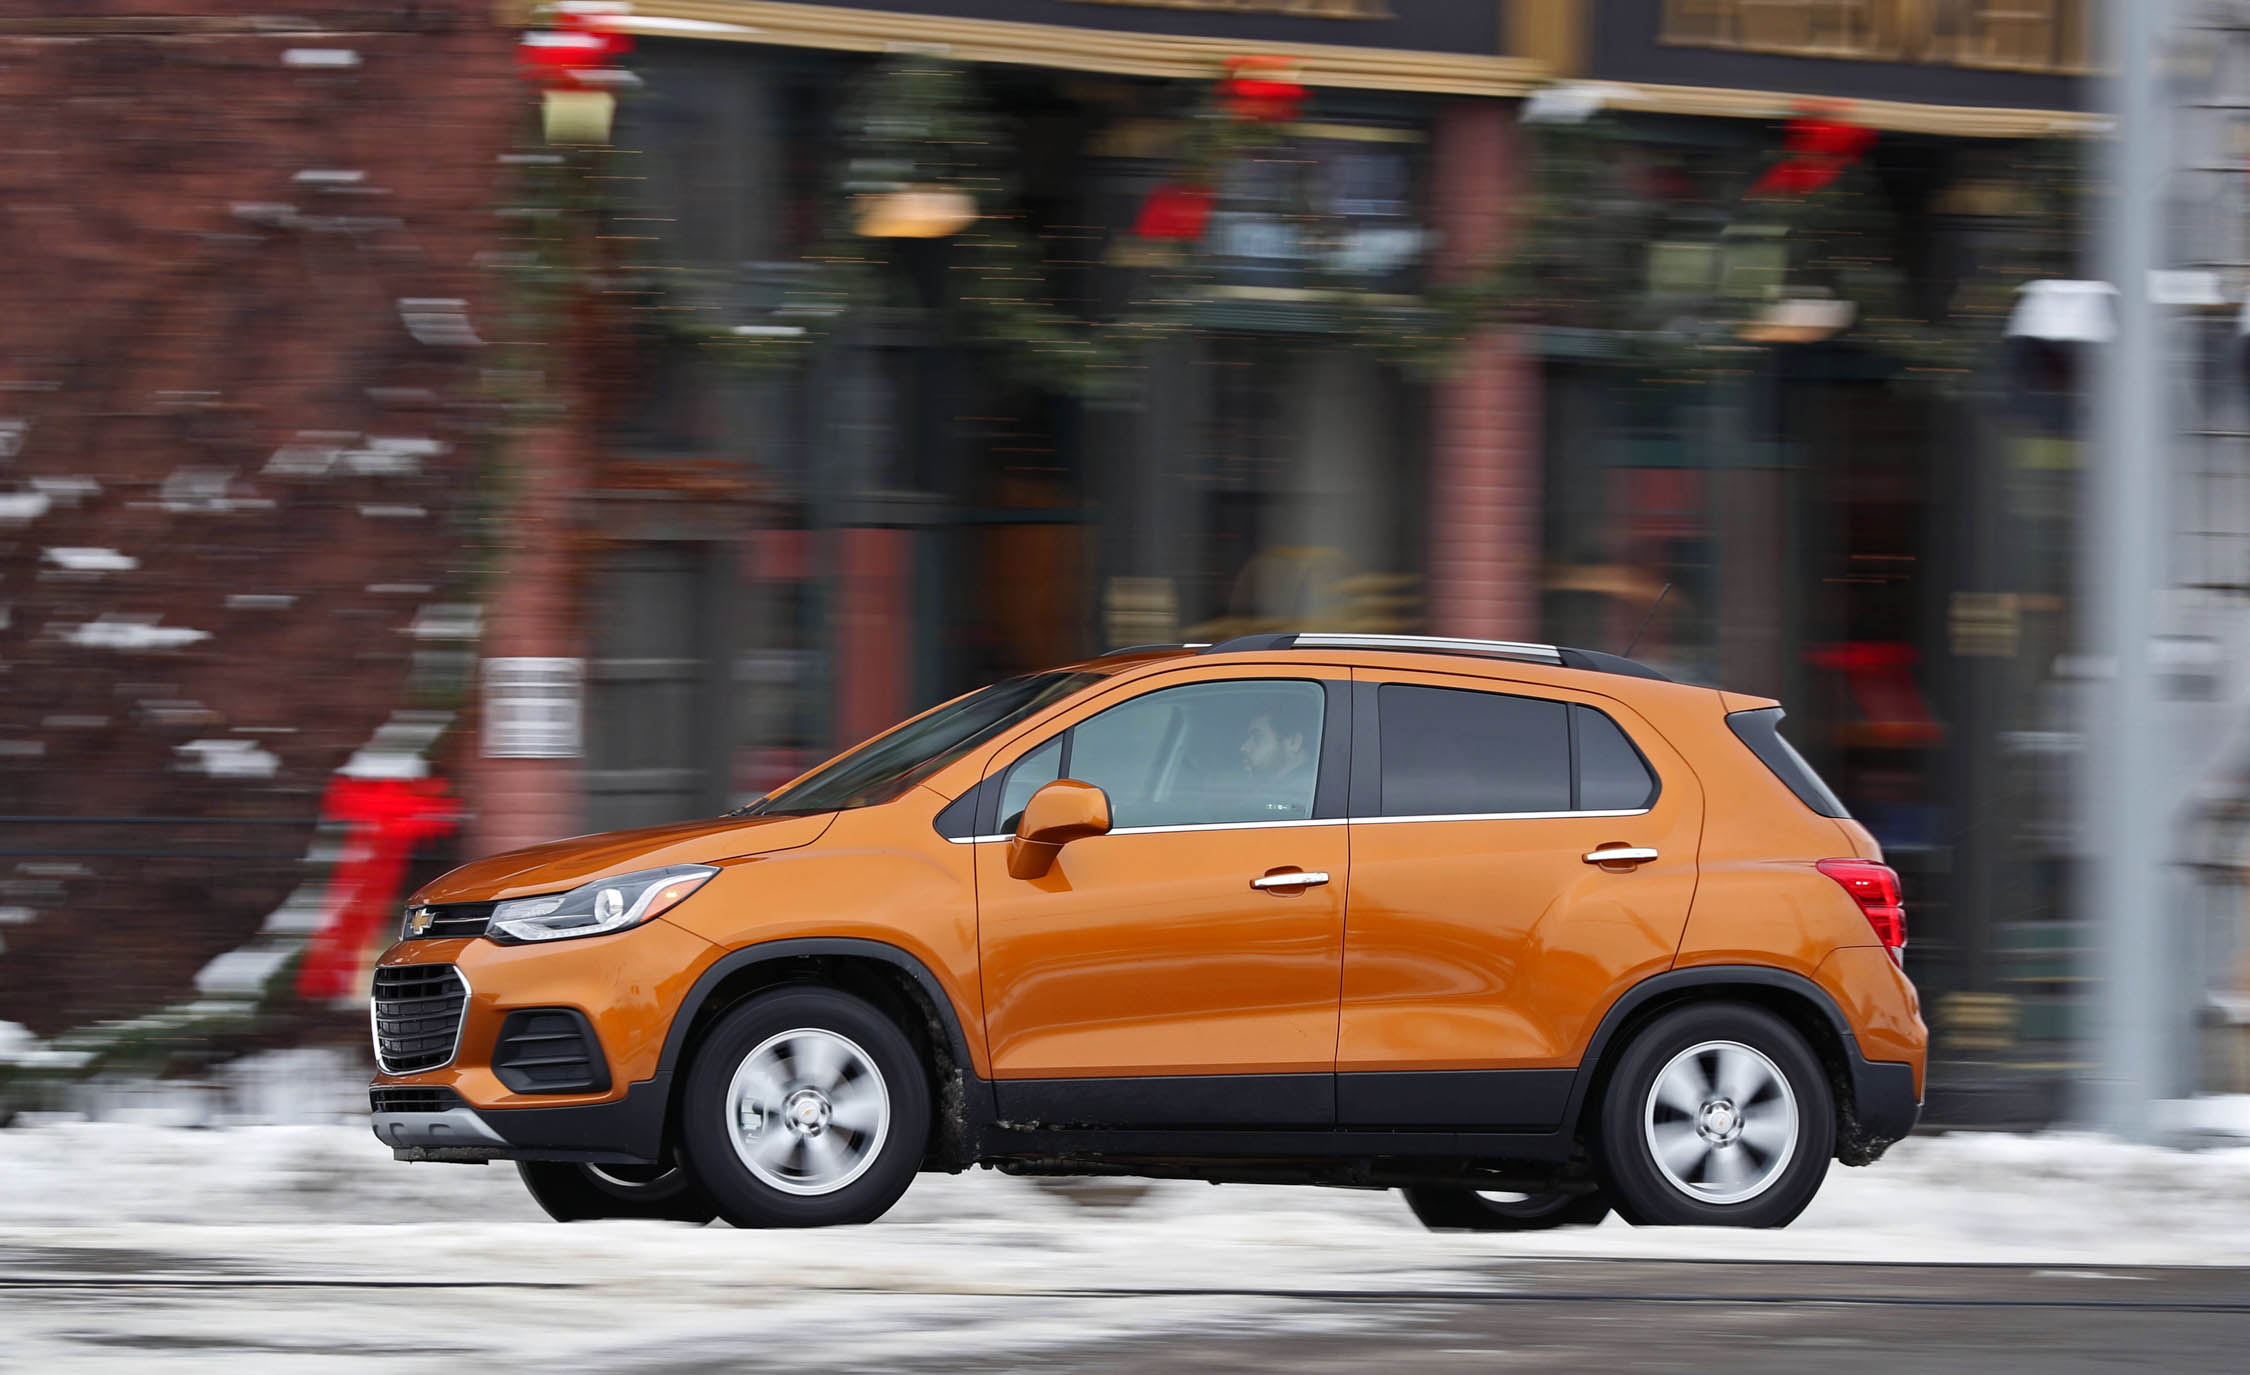 2017 Chevrolet Trax Test Drive Side And Front View (View 10 of 47)